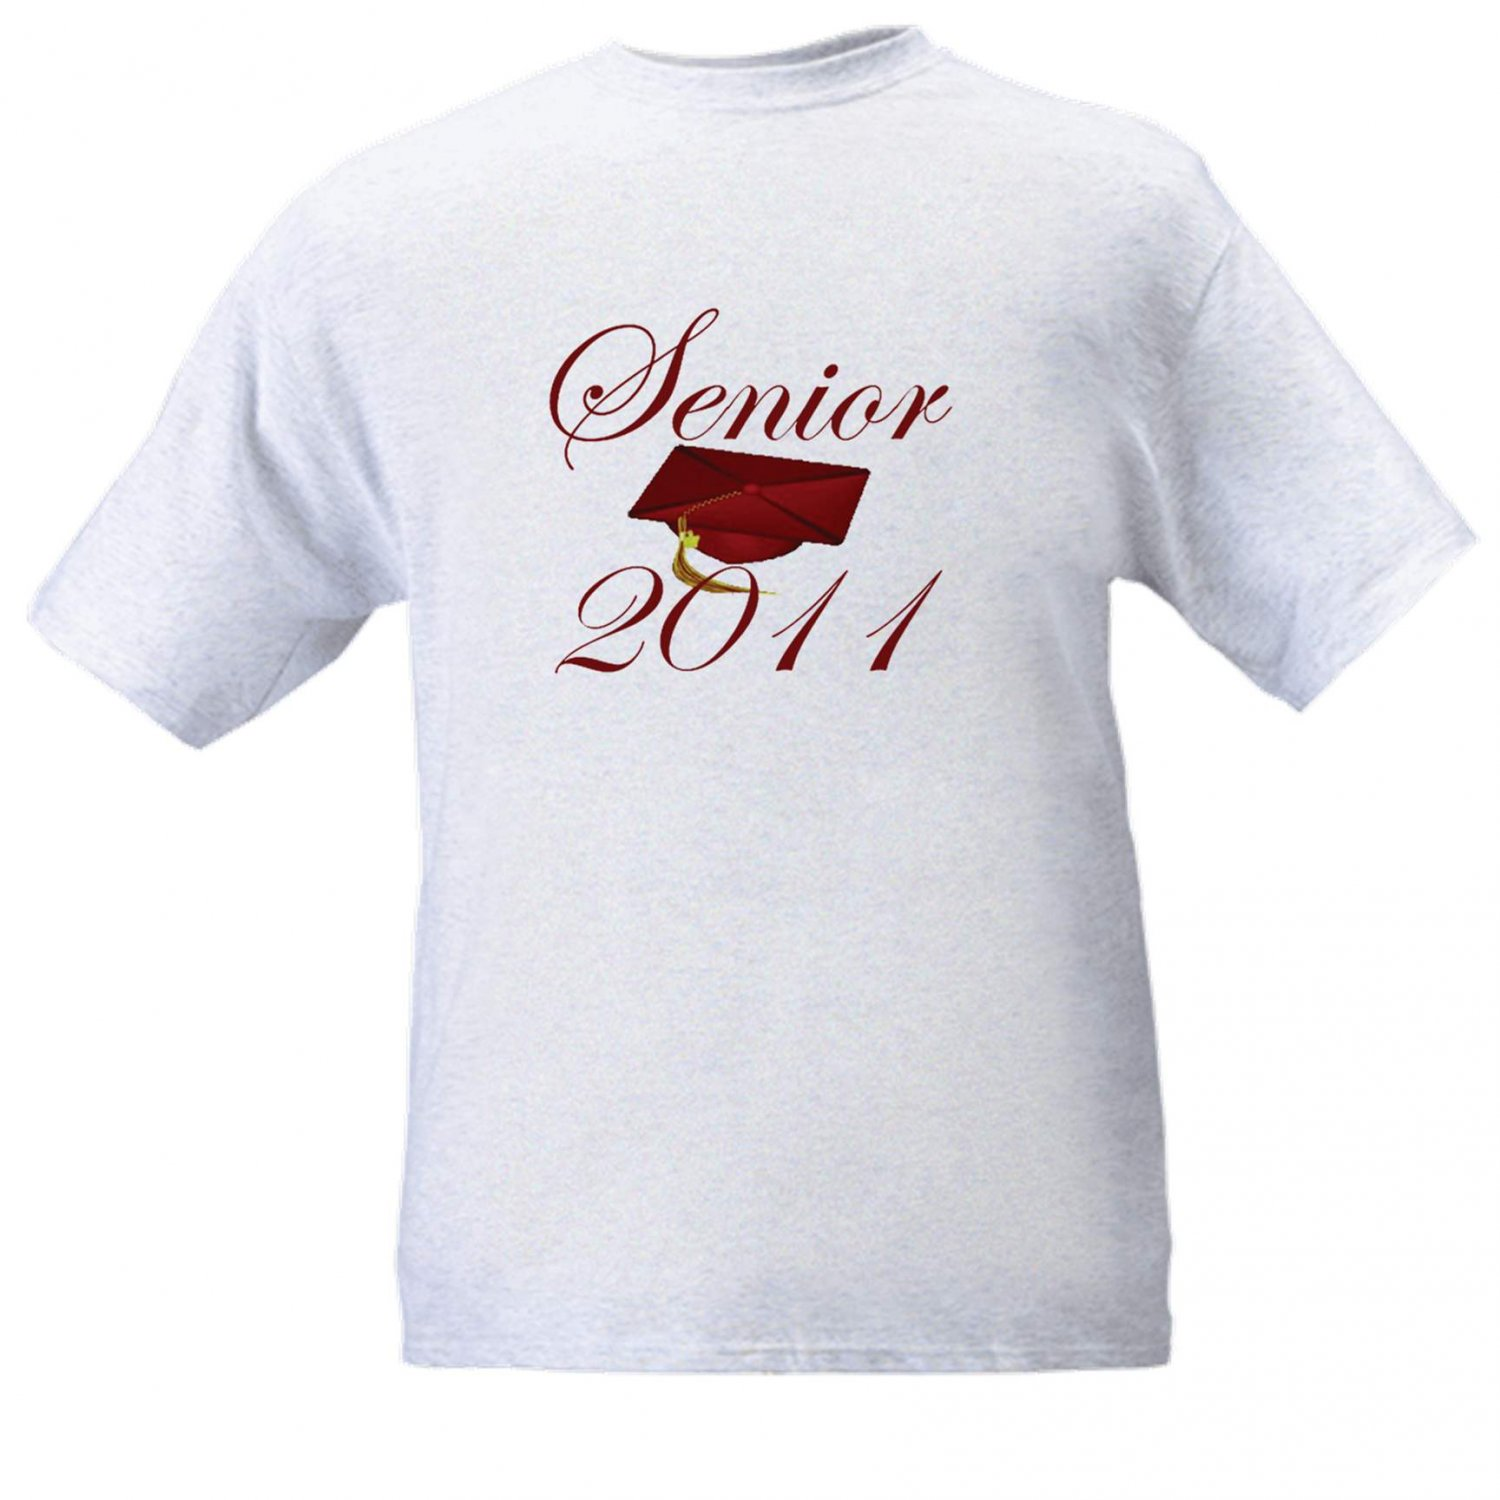 Senior 2014 Ash Grey T-Shirt with maroon mortar board